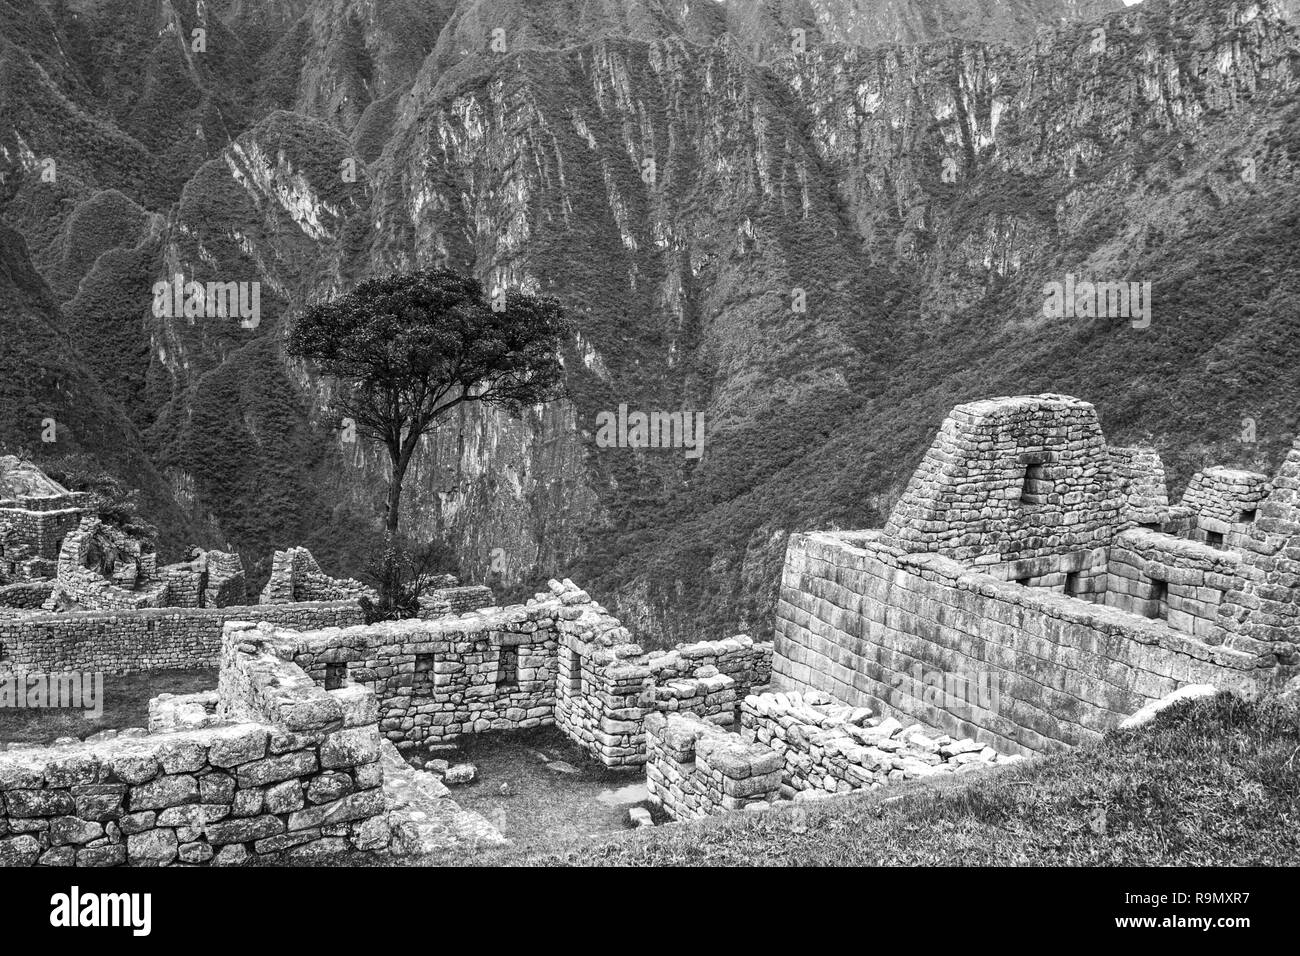 Machu Picchu, Peru. The ancient Inca city, located on Peru at the mountain an altitude of 2,450 metersl, dominating the valley of the Urubamba River.  - Stock Image